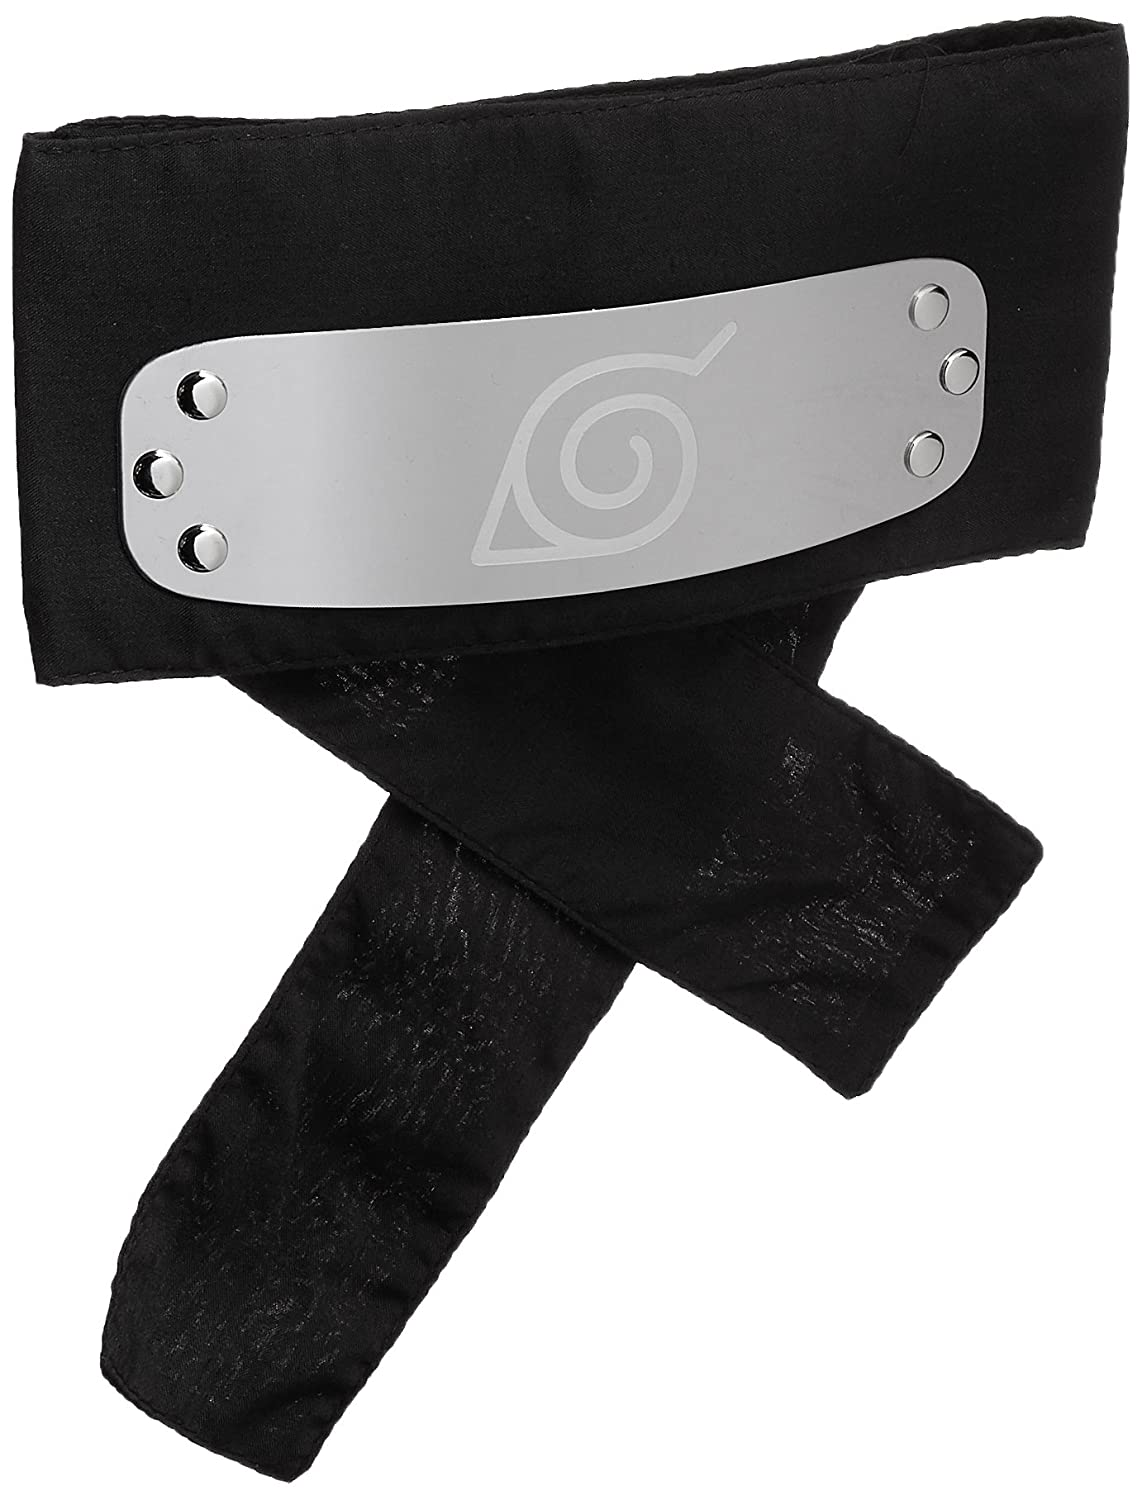 Great Eastern Naruto Shippuden GE-8676 Leaf Village Headband - Black